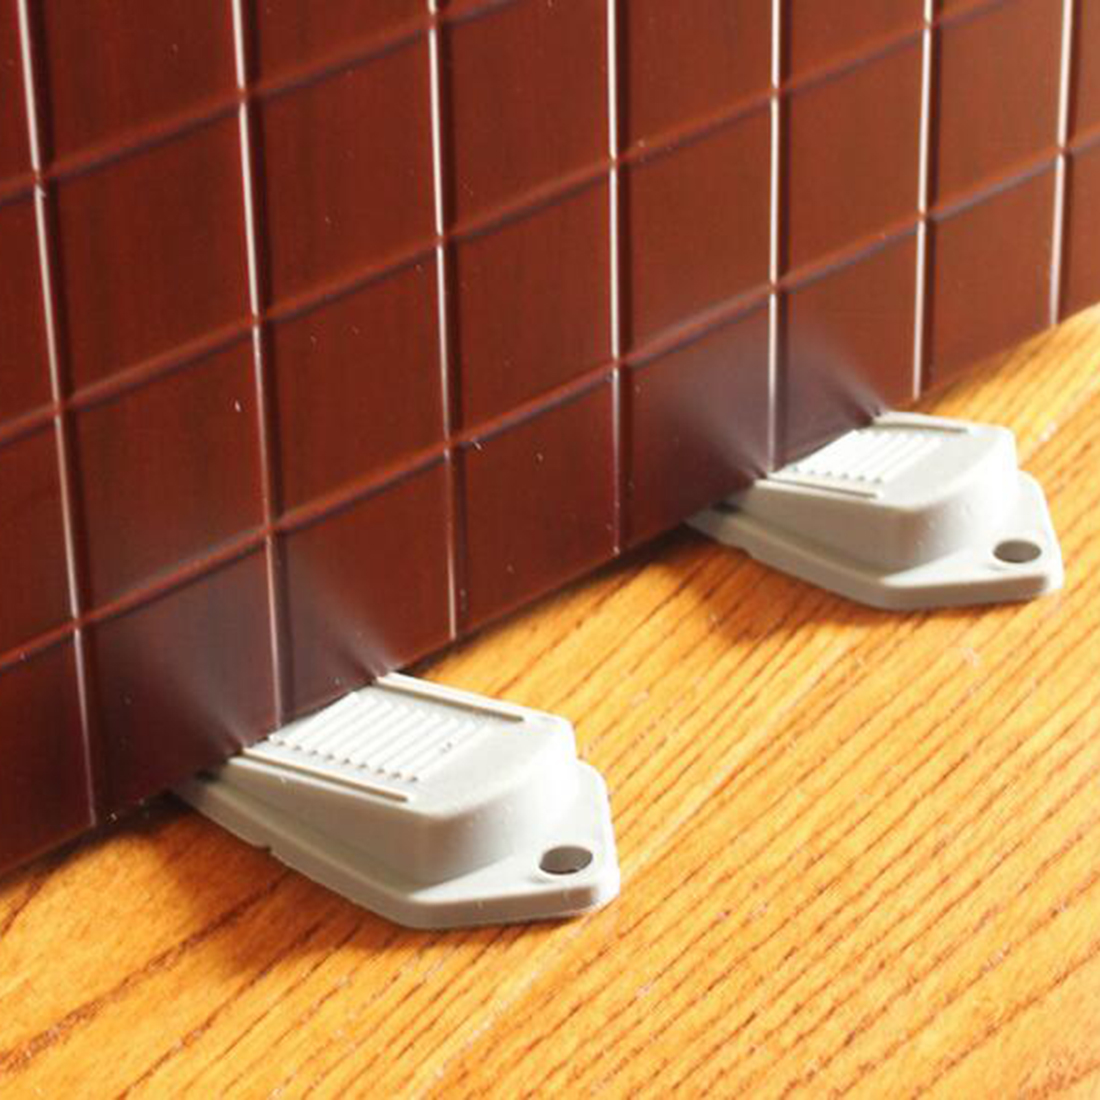 doors entries using door devices glass stopper plastic security break secure swinging to sliding prevent or ins insert